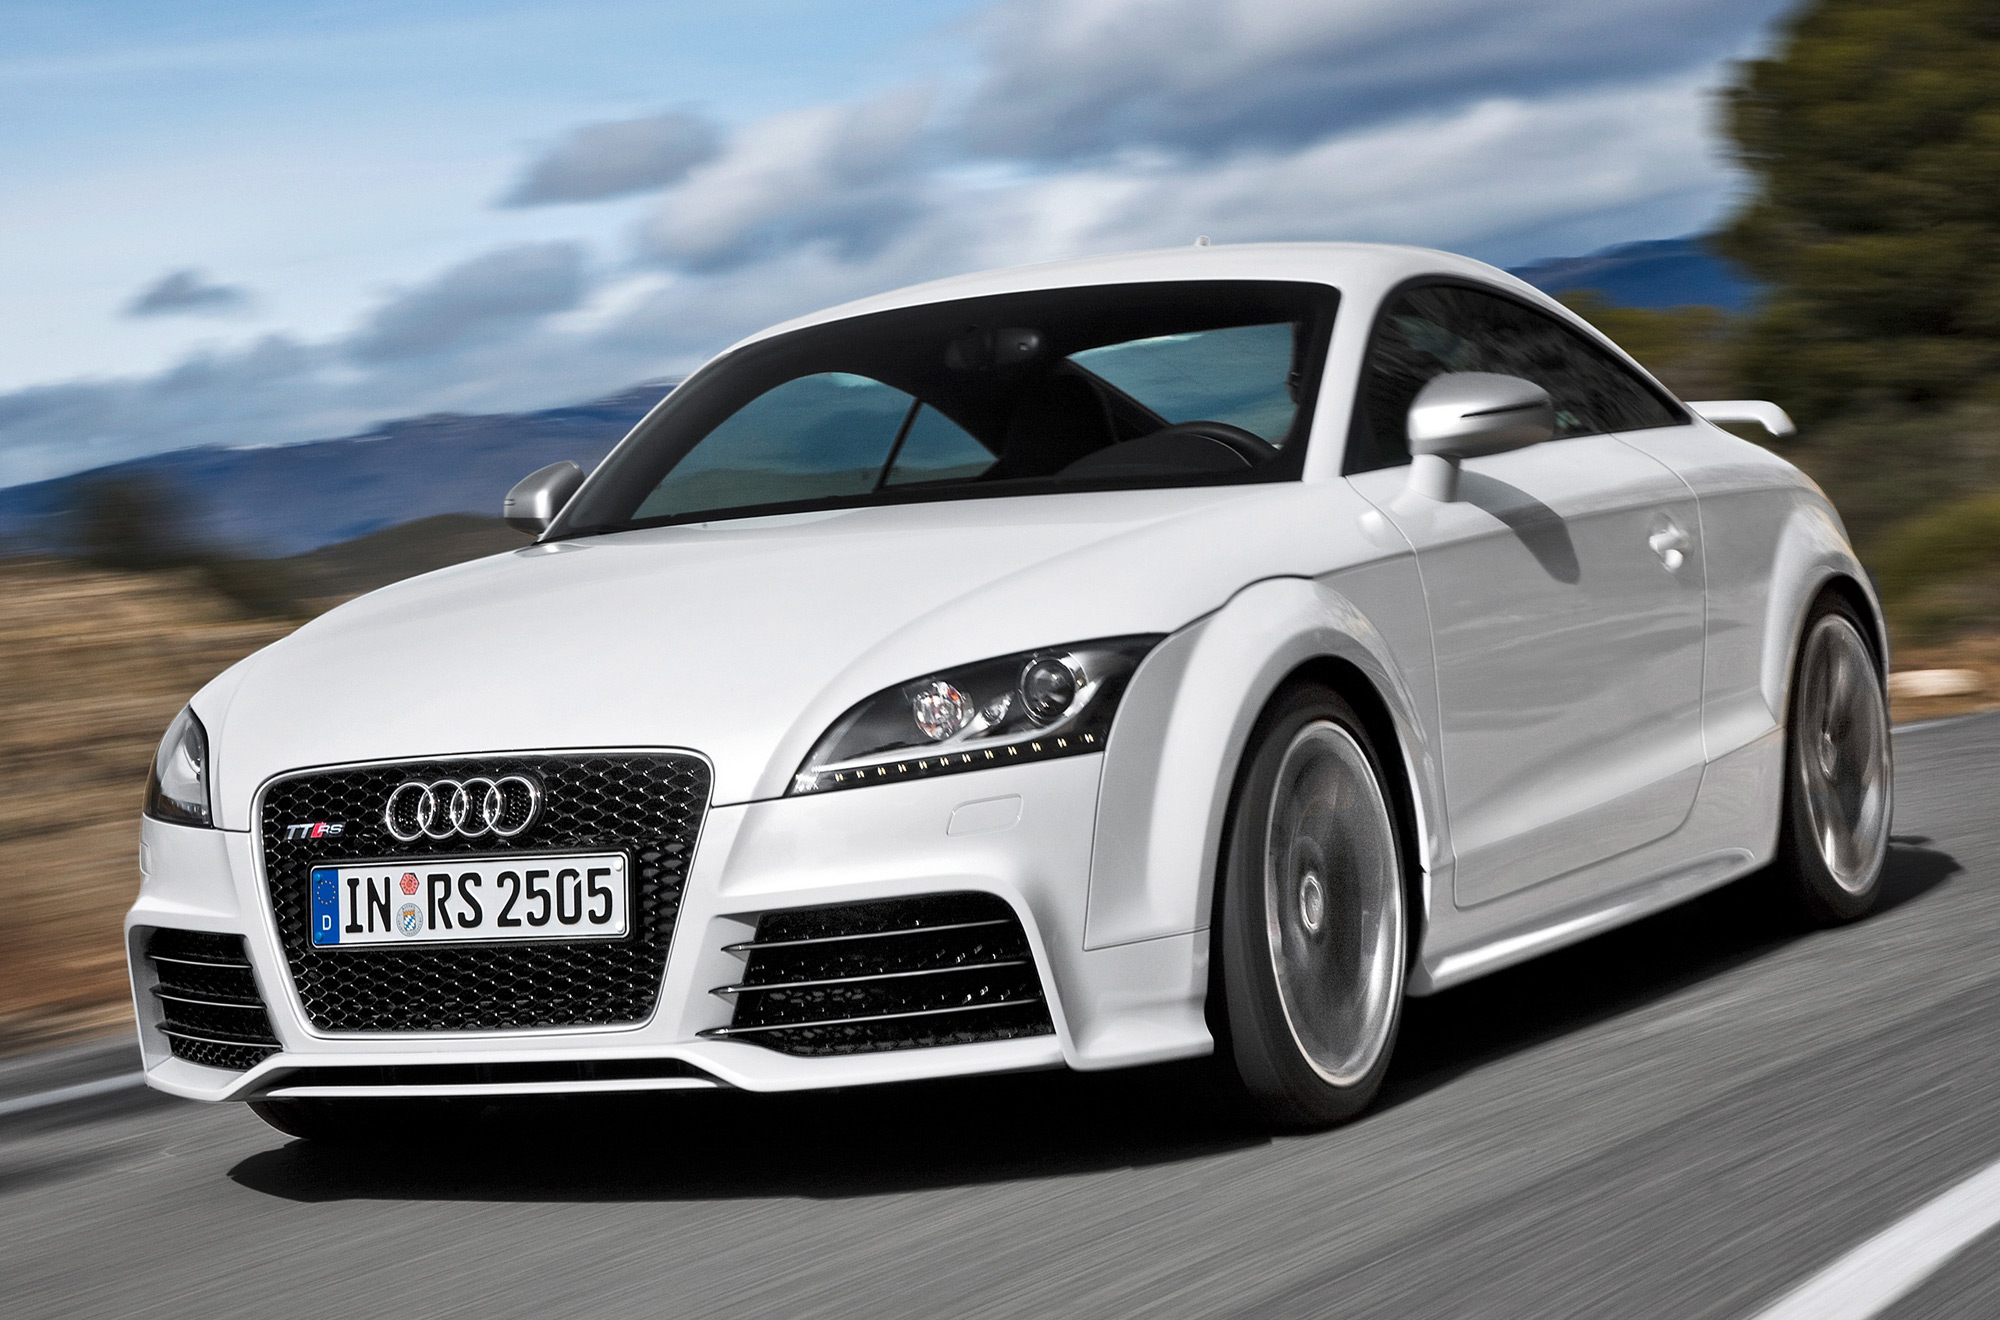 Audi Tt Named As The Best Connected Automobile